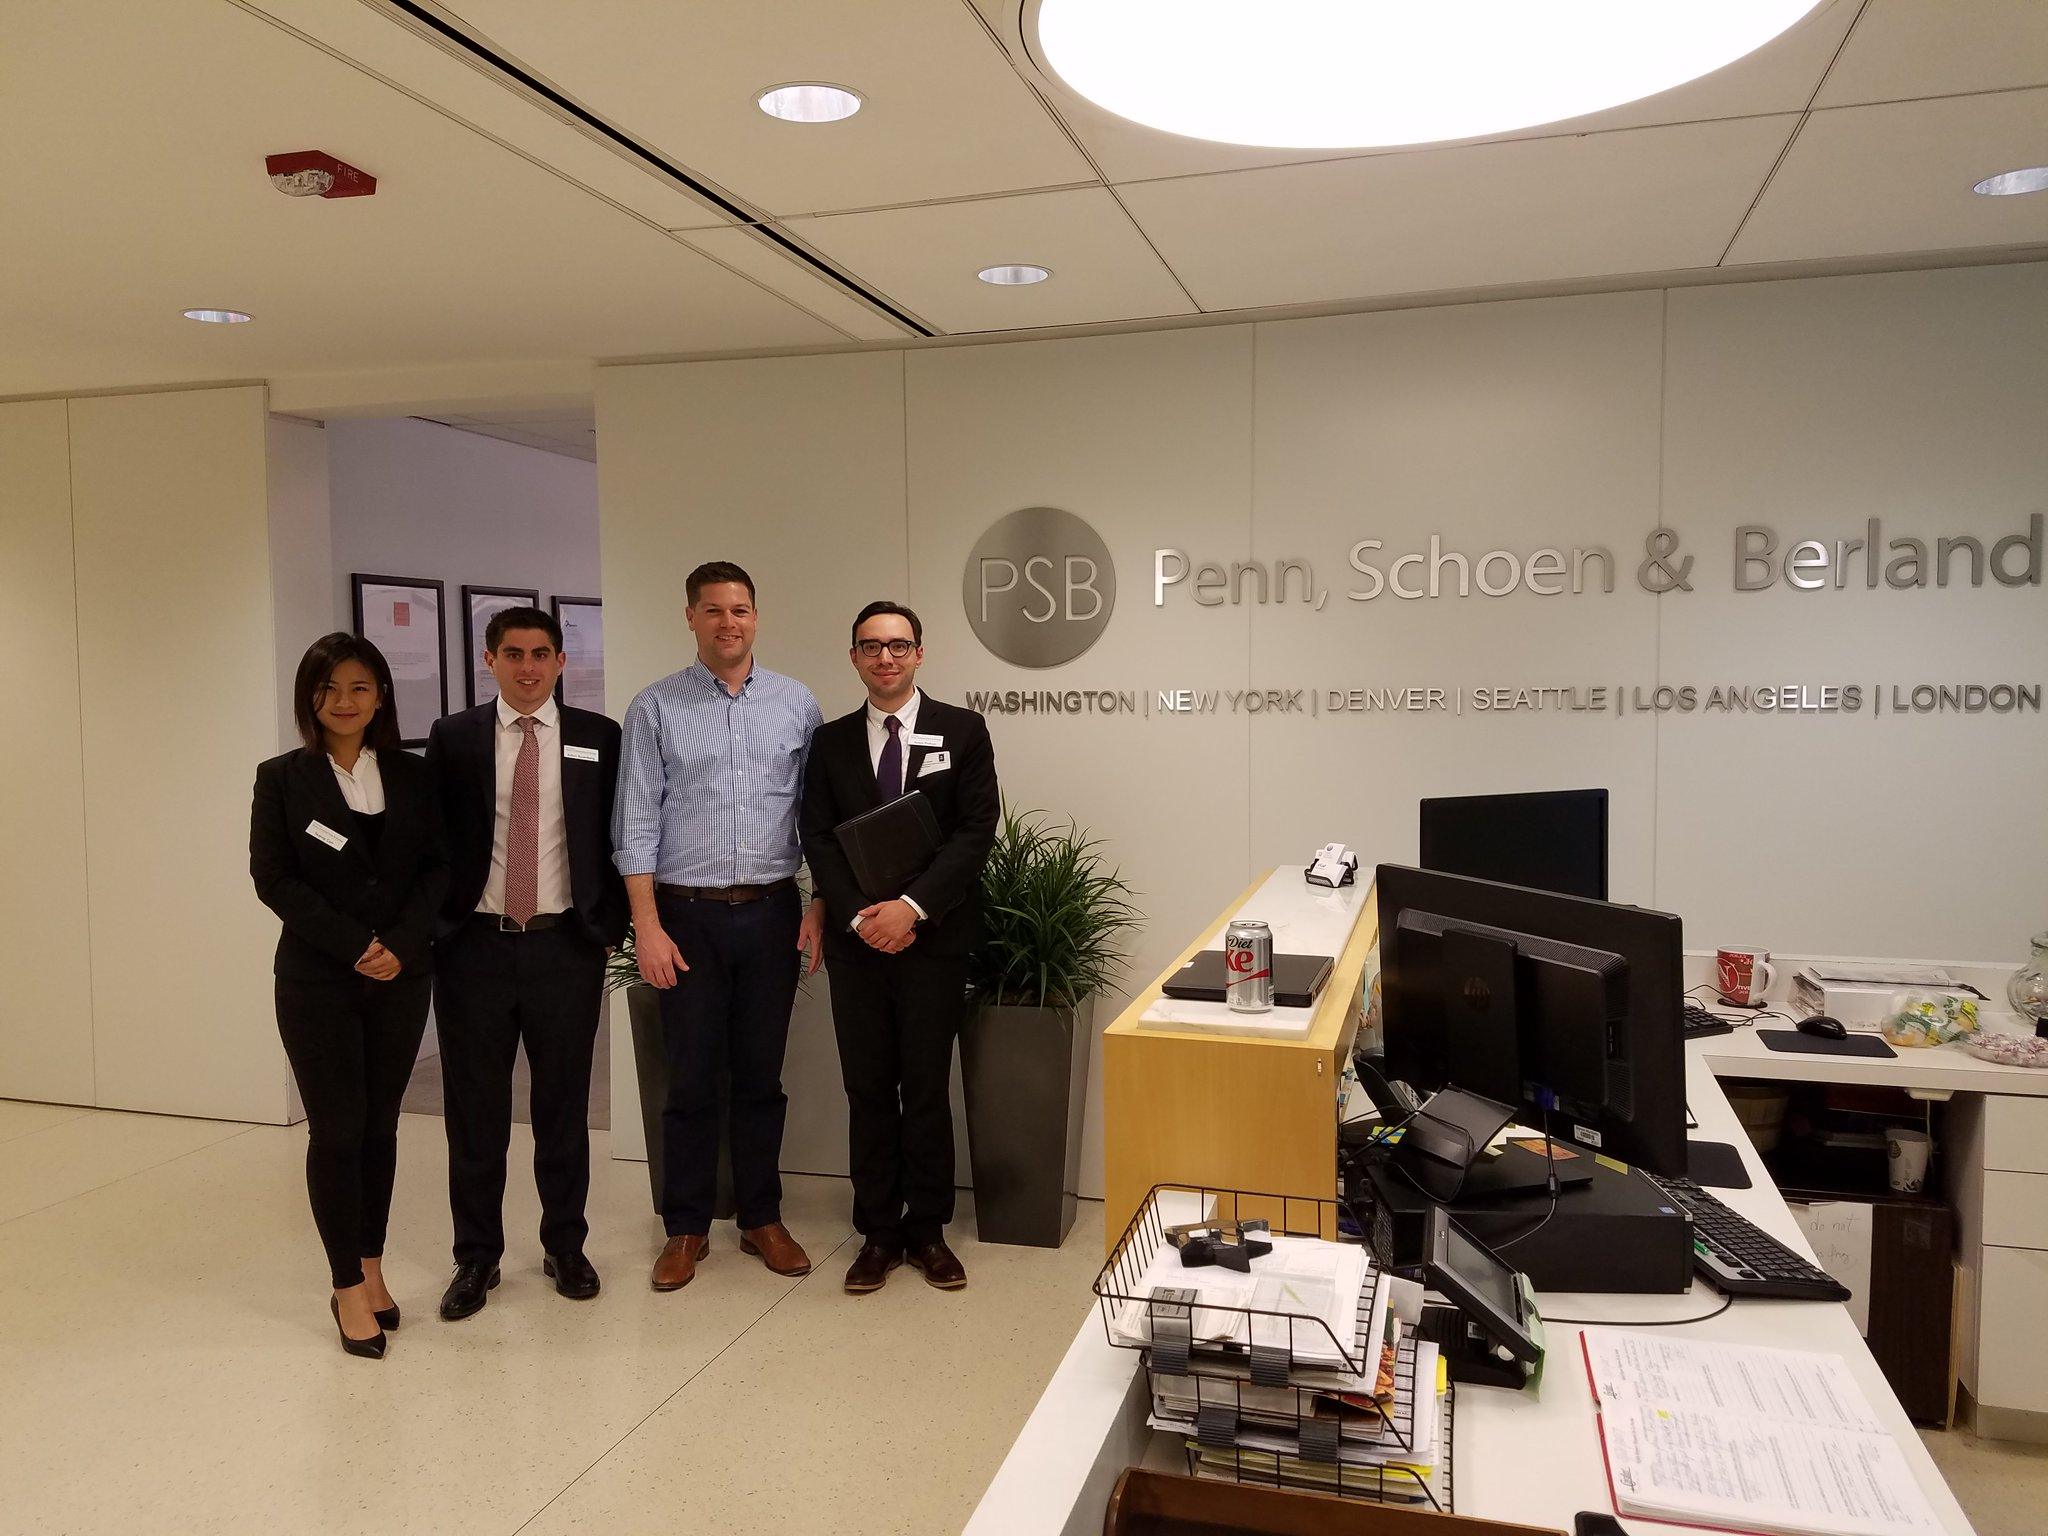 Enjoyed an insightful glimpse at the private sector during our visit at Penn Schoen Berland! @psbresearch #WashingtonDC https://t.co/oesoEPbP9m